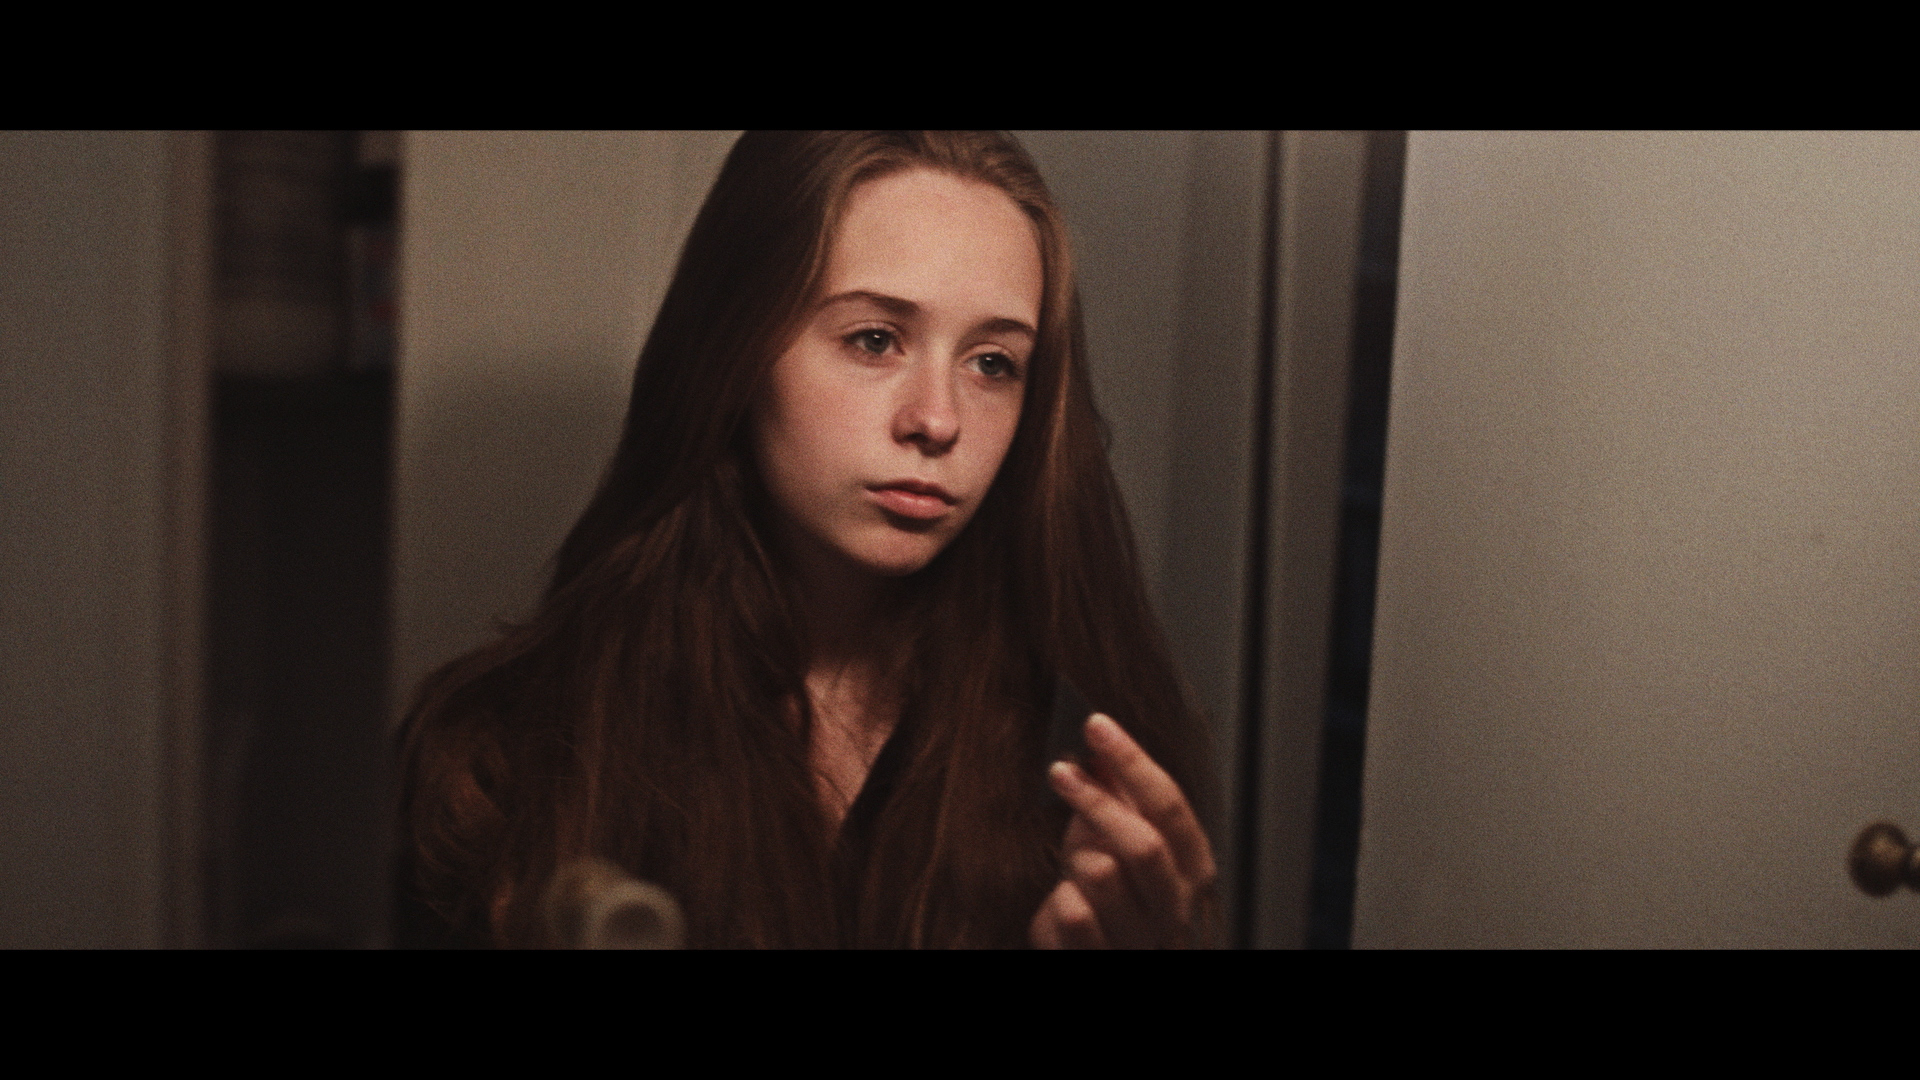 A scene from the teen-created film 'A Better Place'